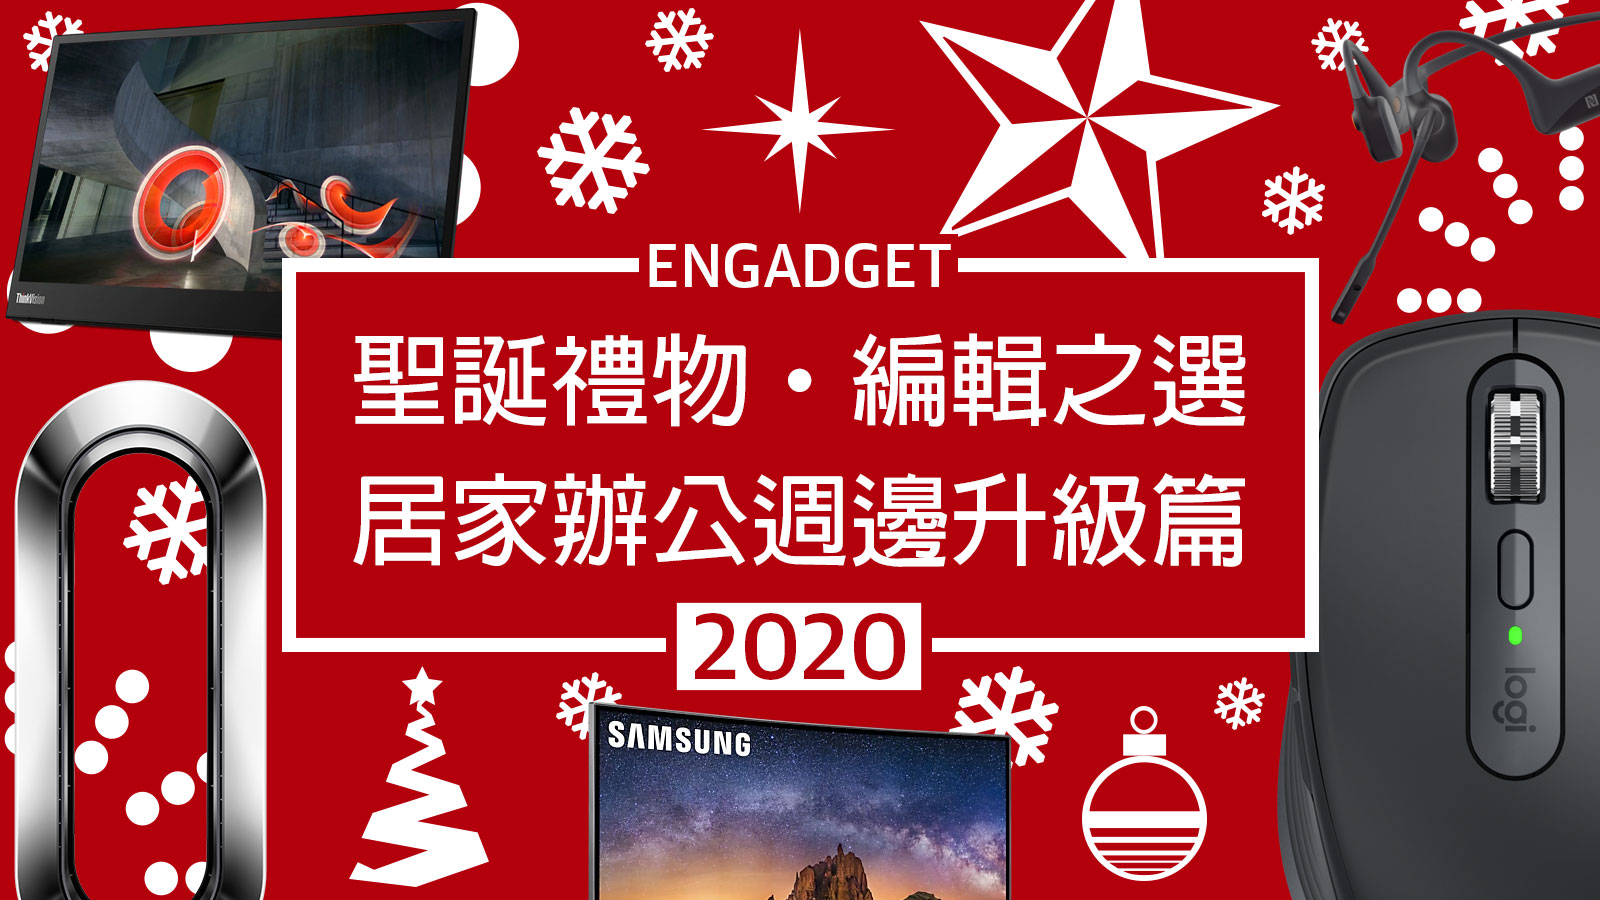 Engadget Xmas gift guide 2020